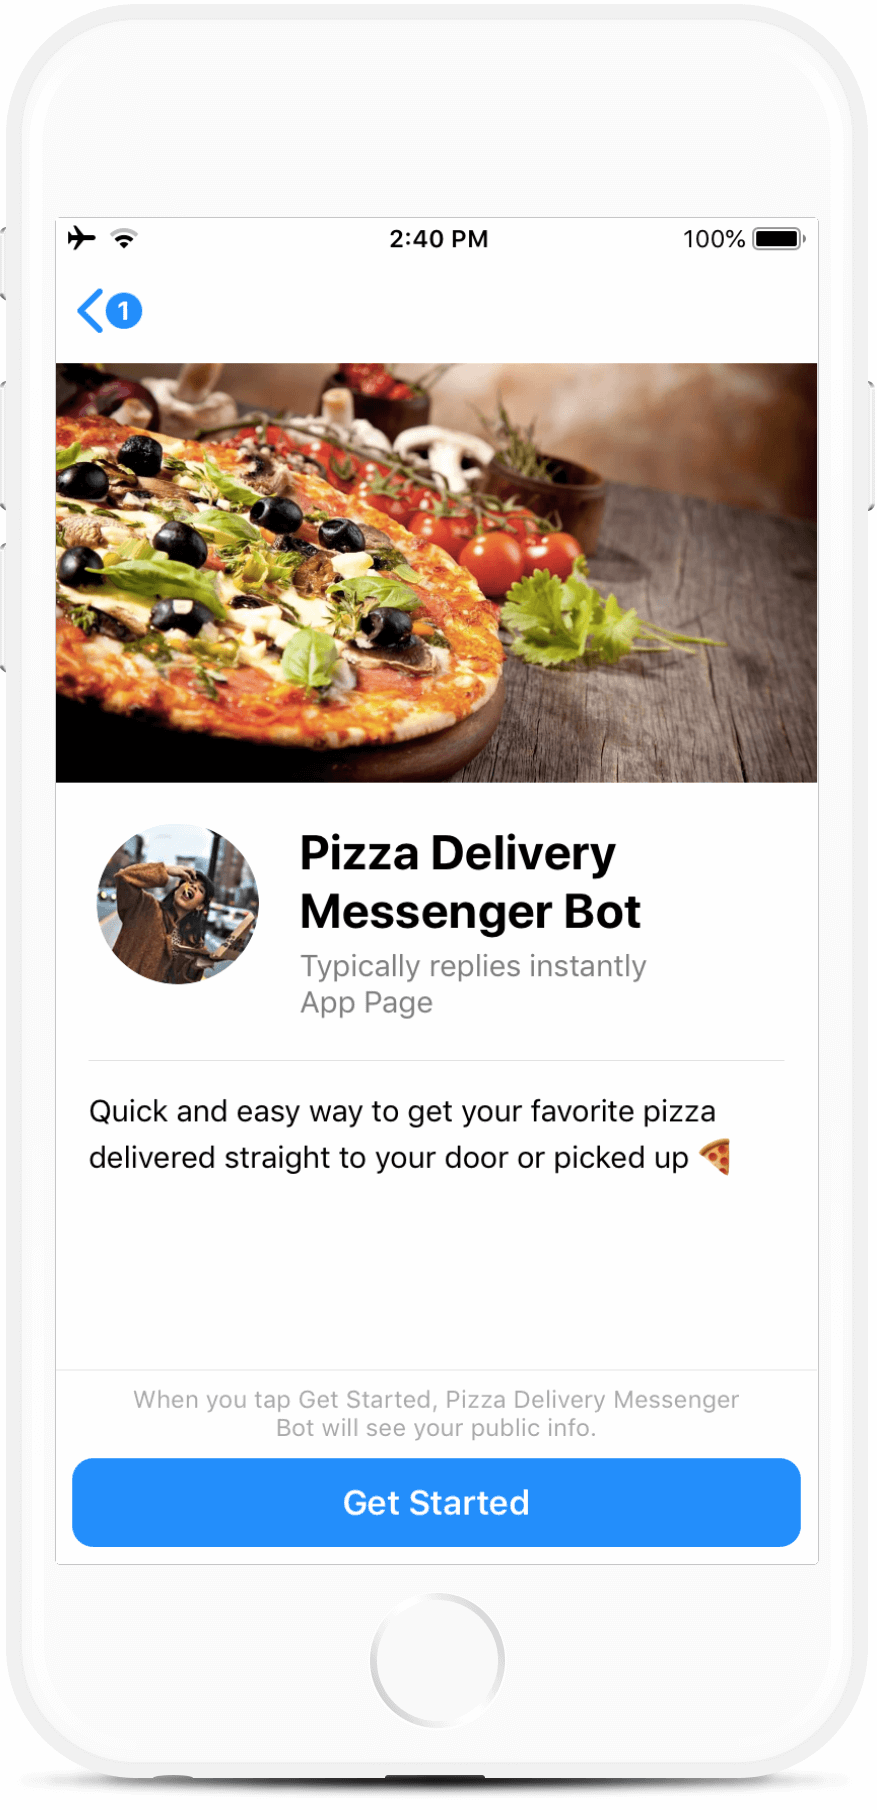 Pizza Ordering and Delivery Messenger Bot